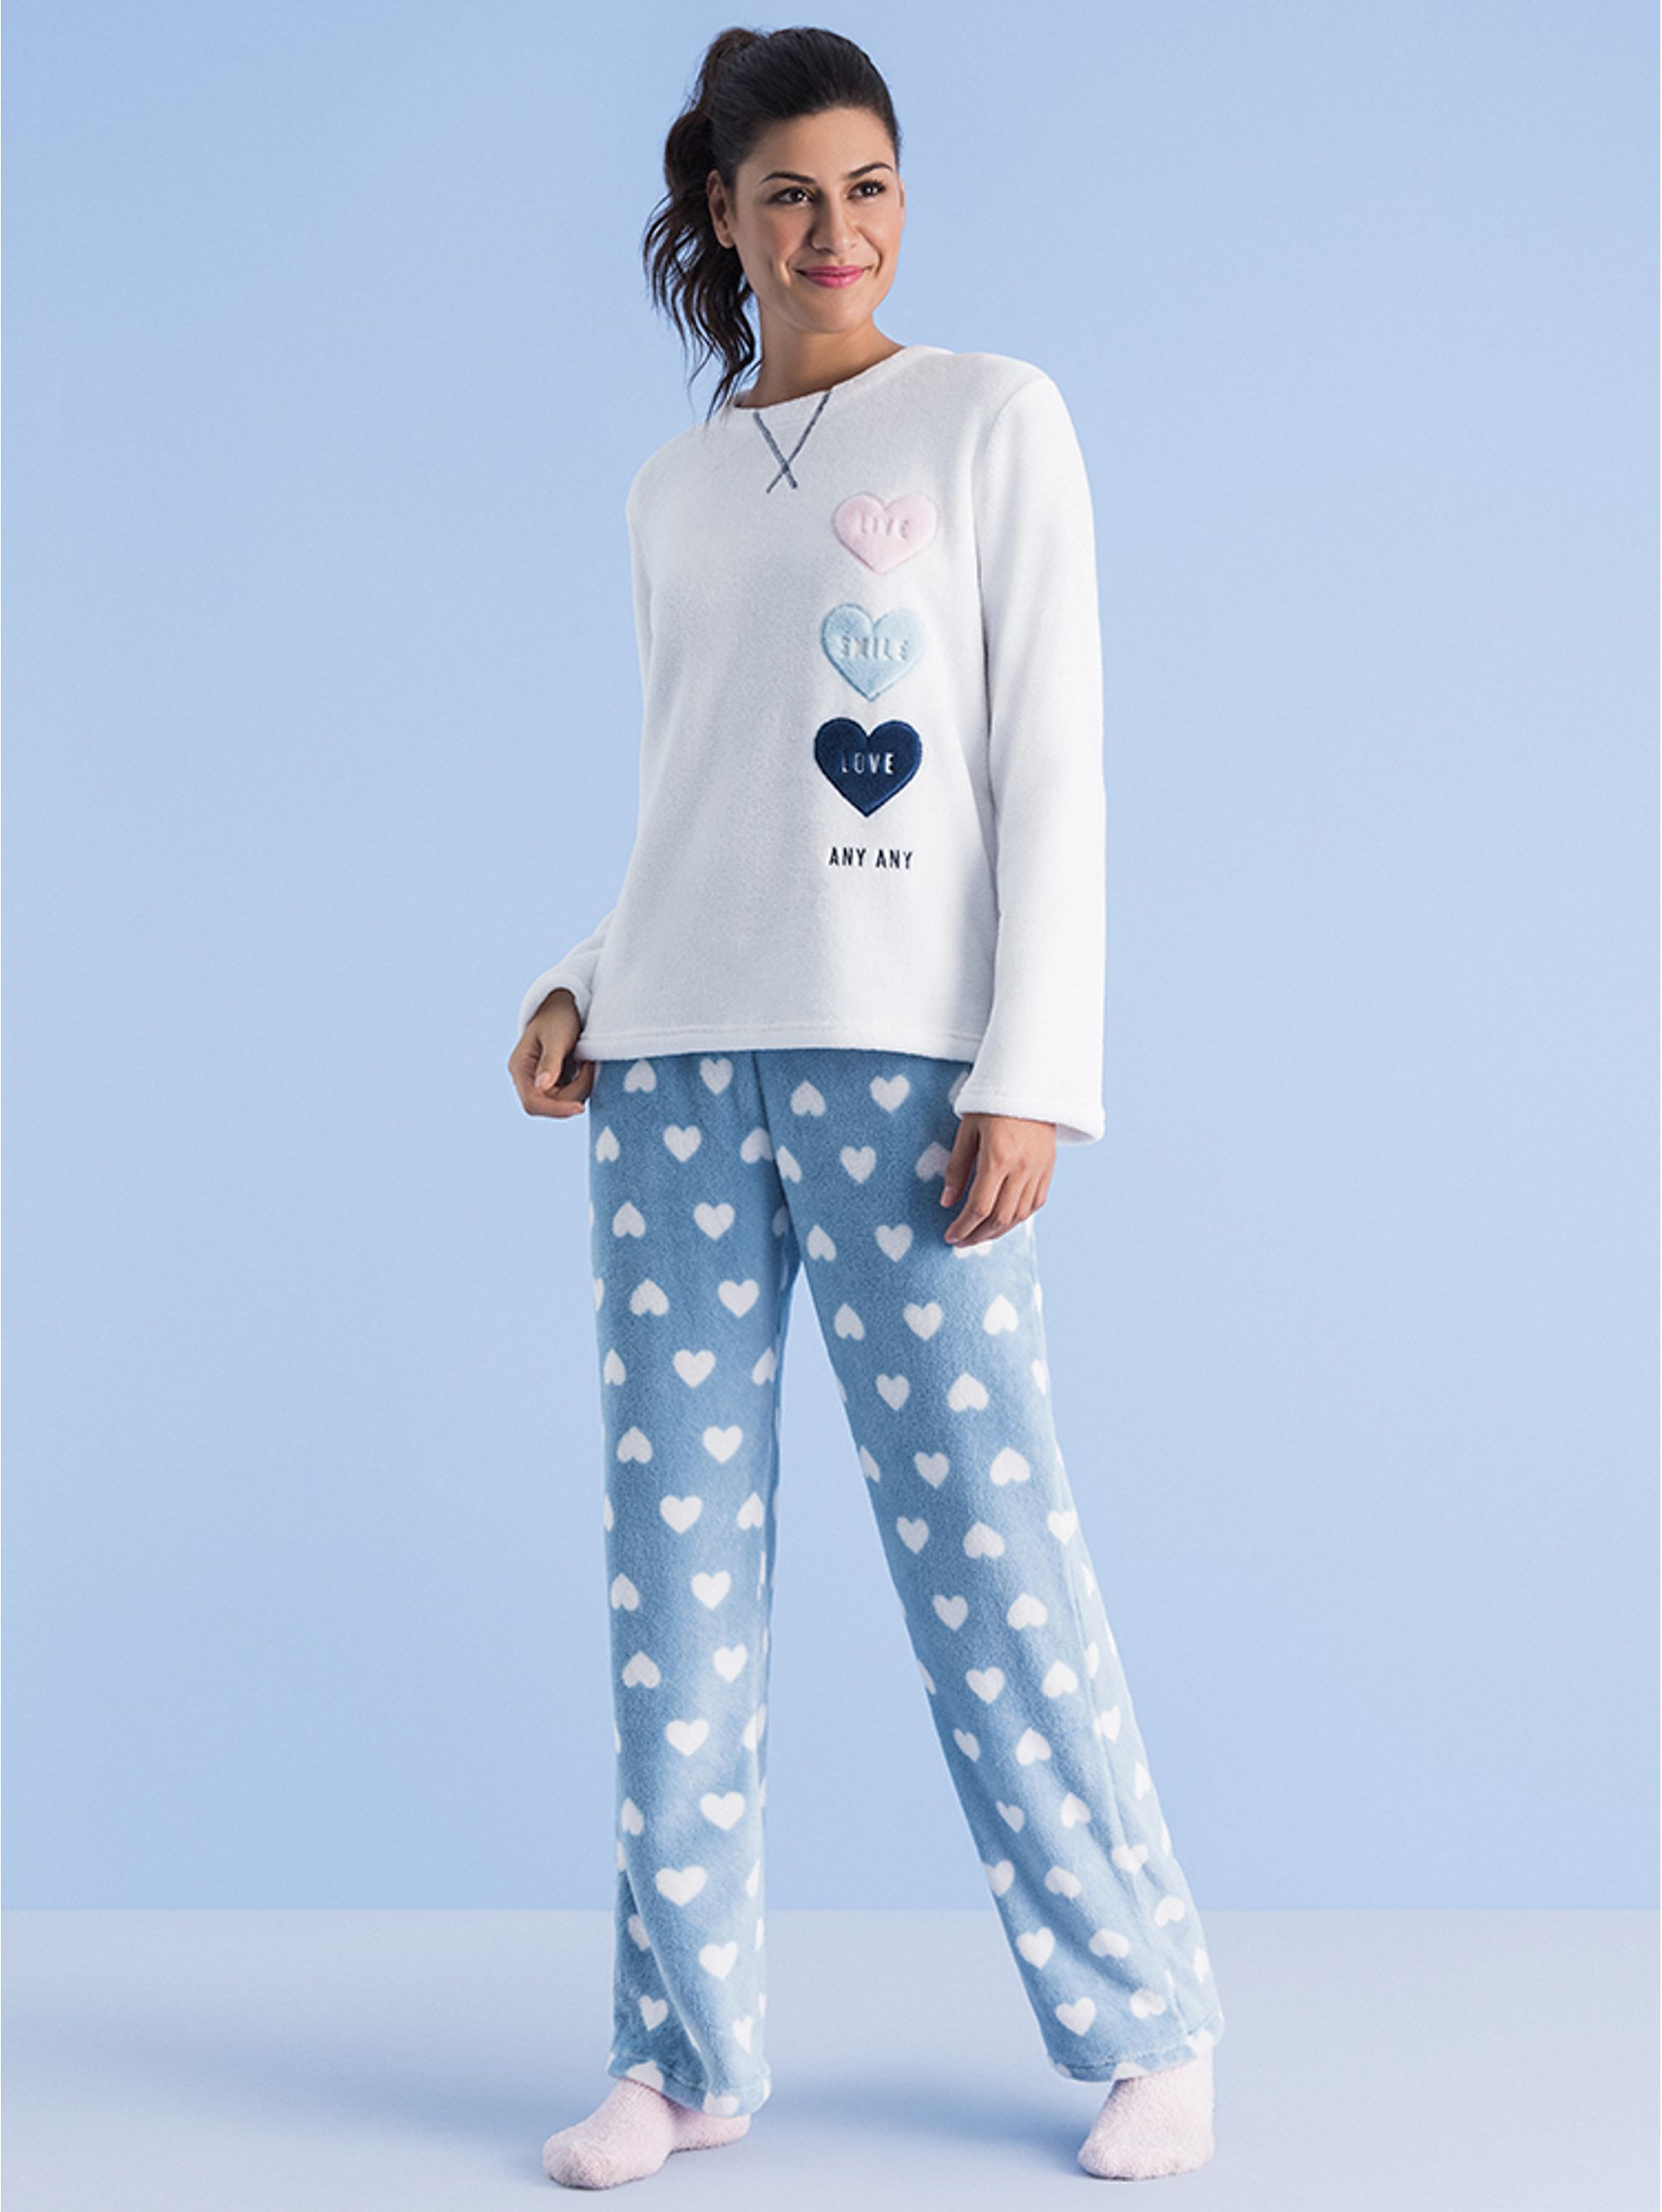 PL-ML-T-LIVE-AND-SMILE_04.01.1247